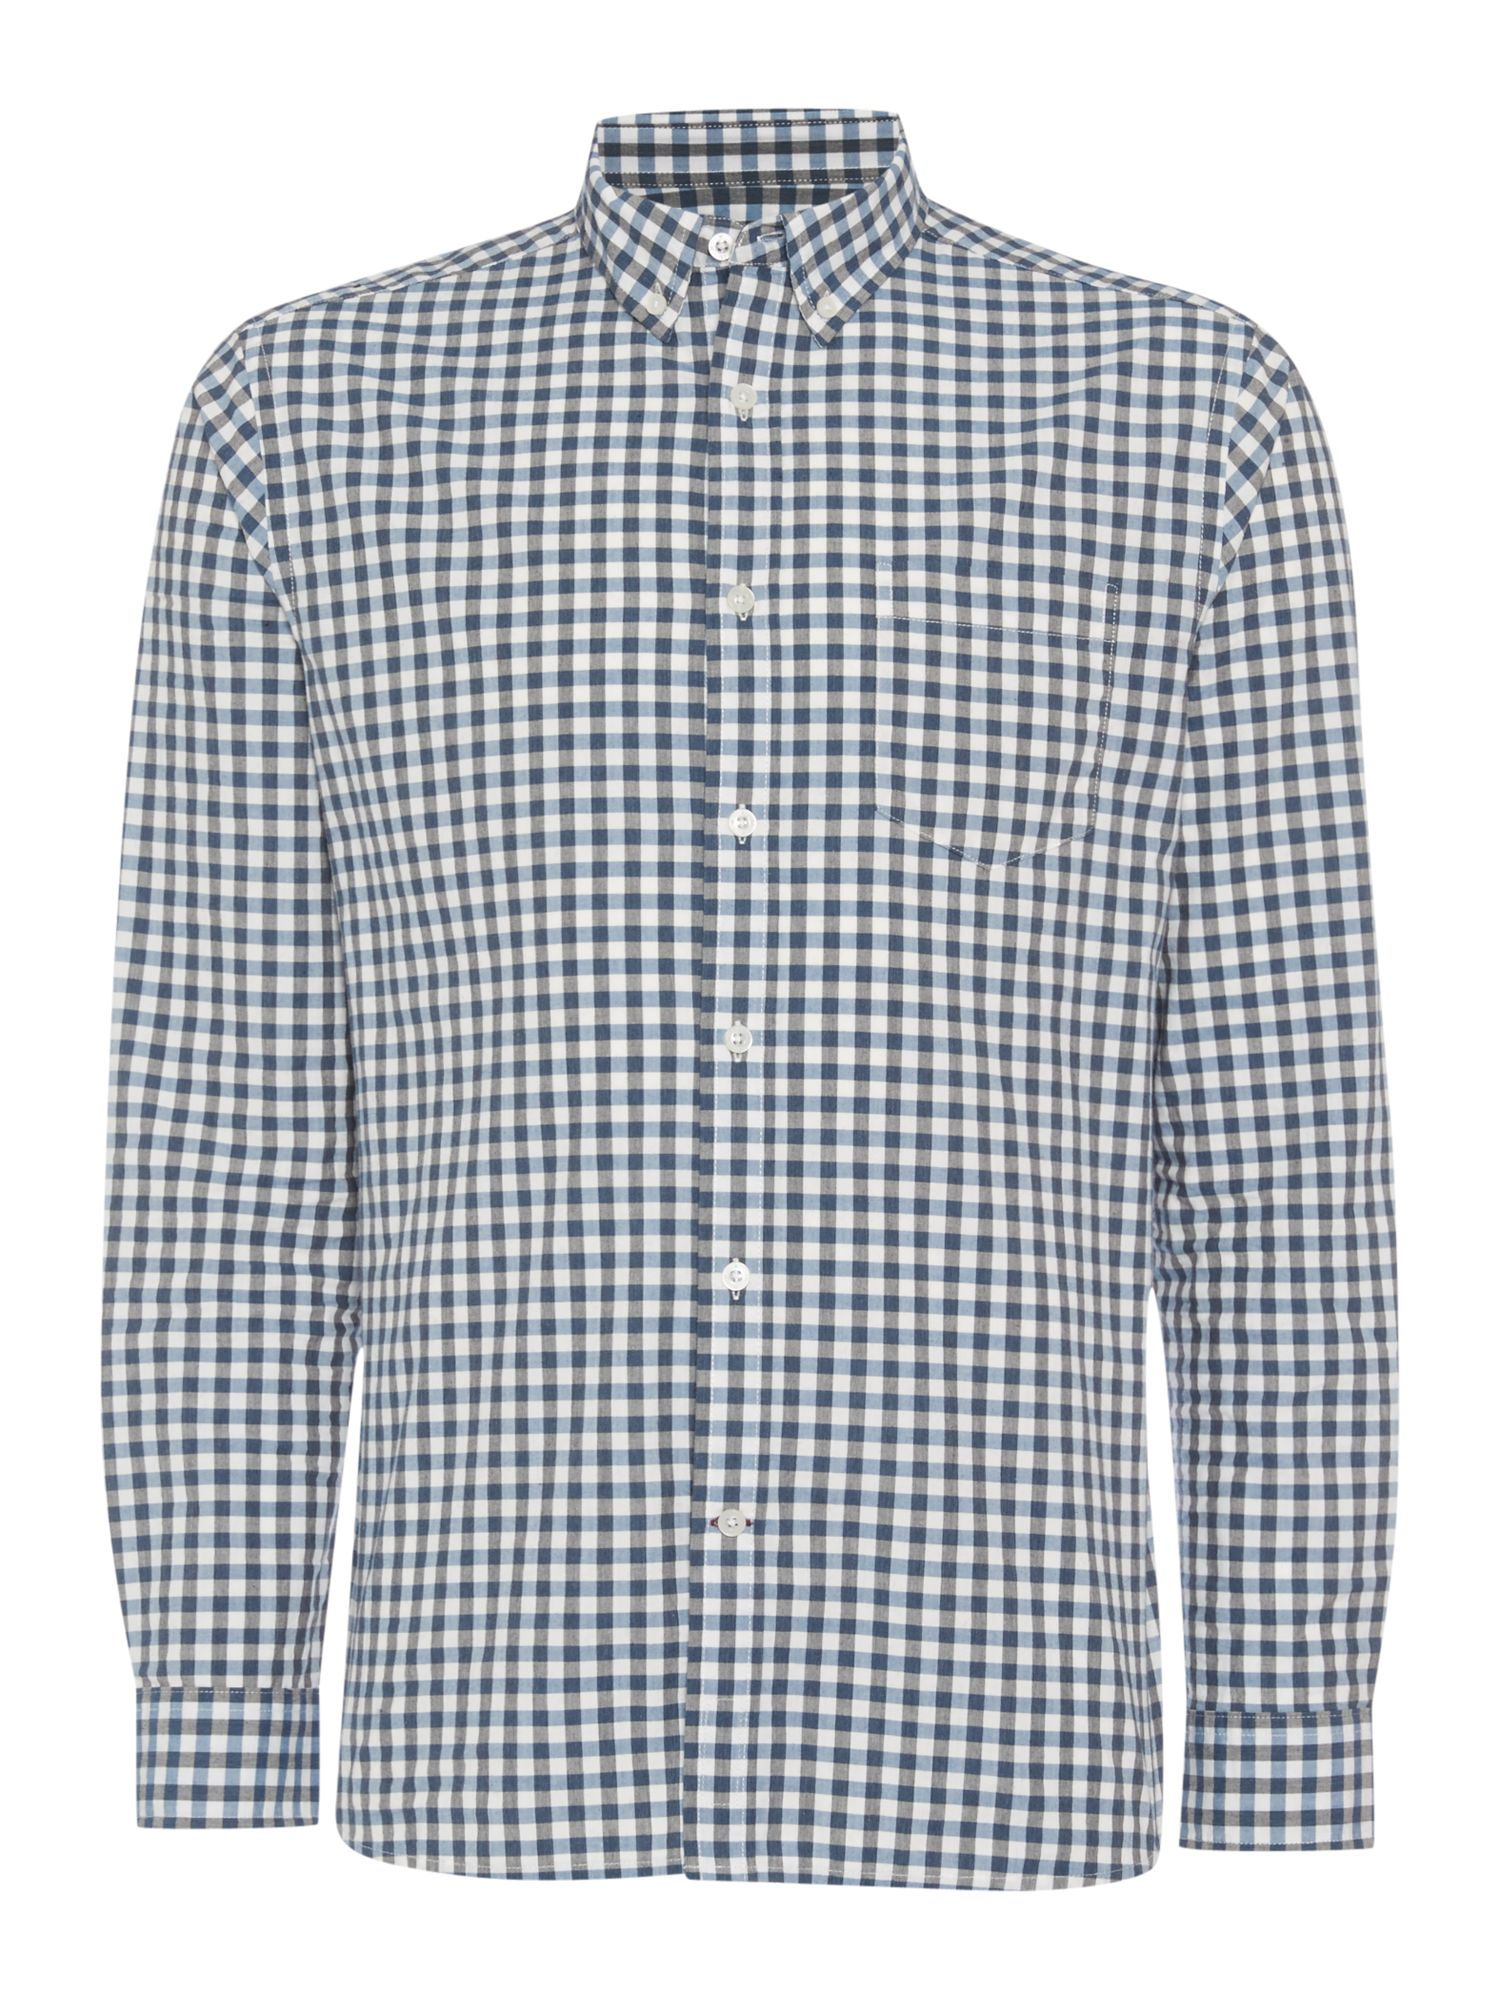 gingham in addition - photo #14